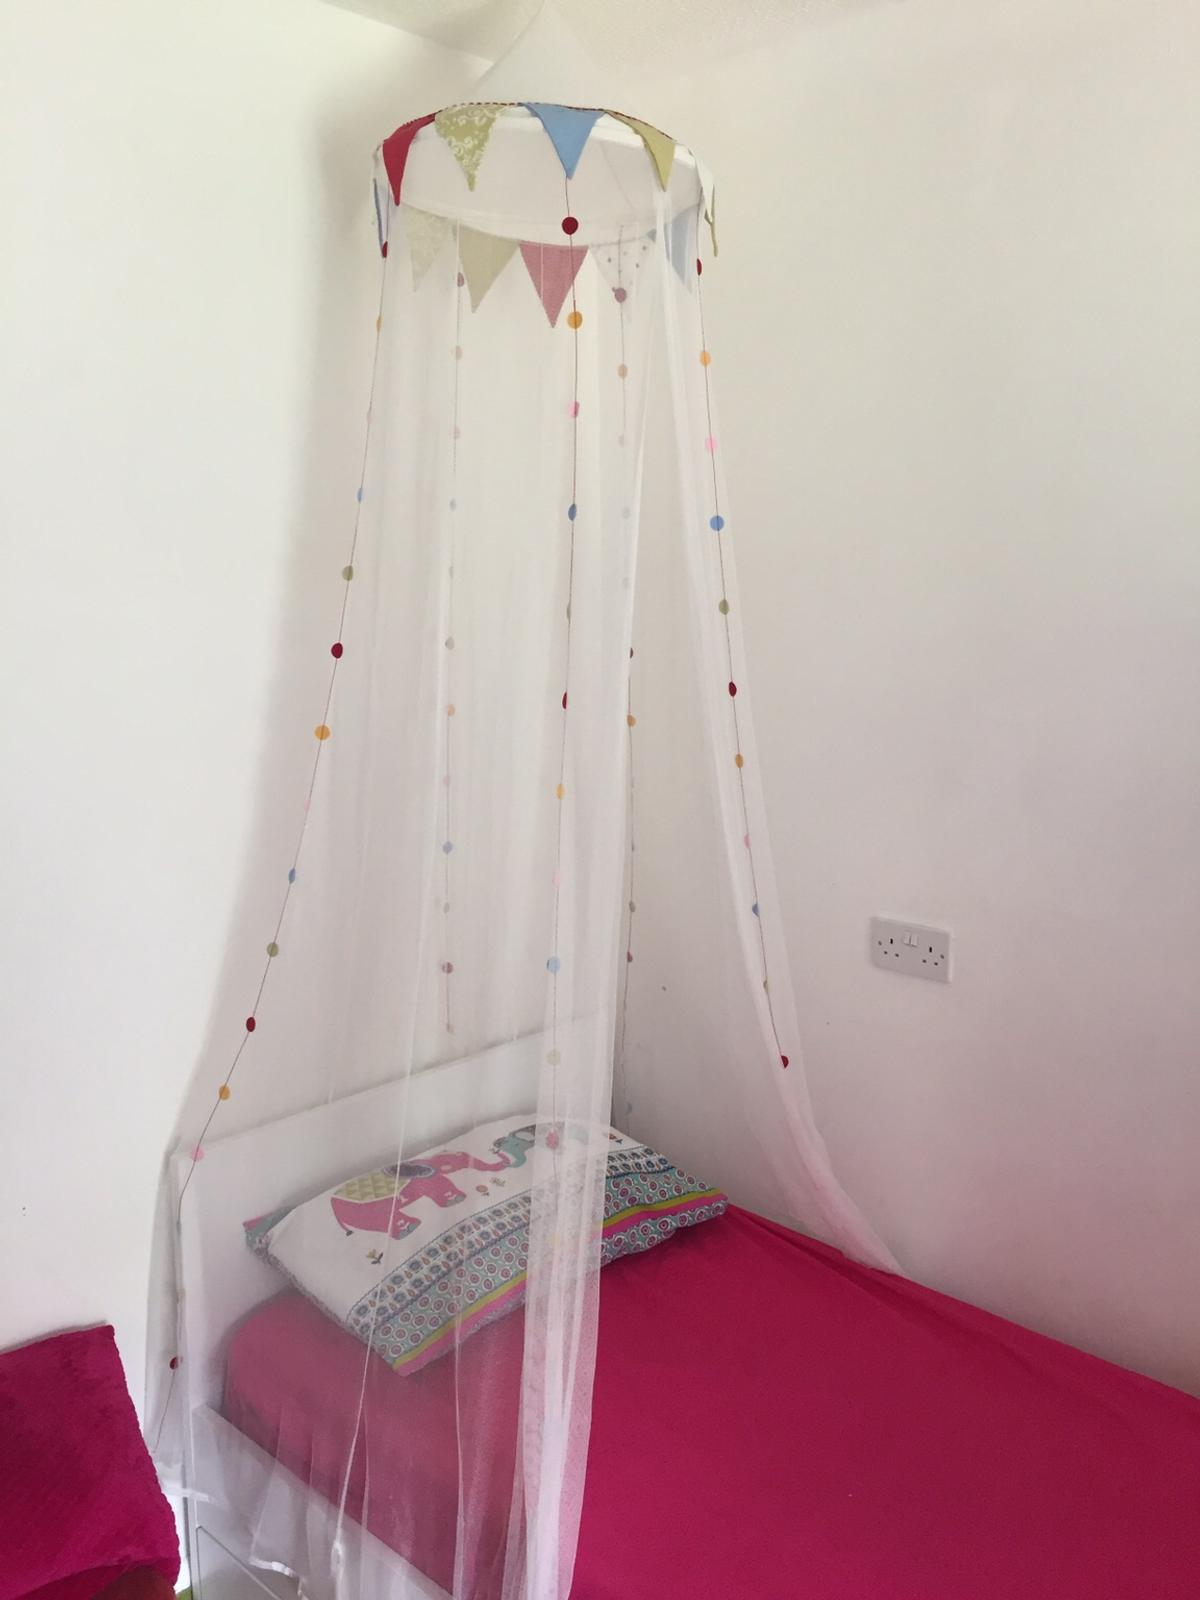 ikea bed canopy excellent condition